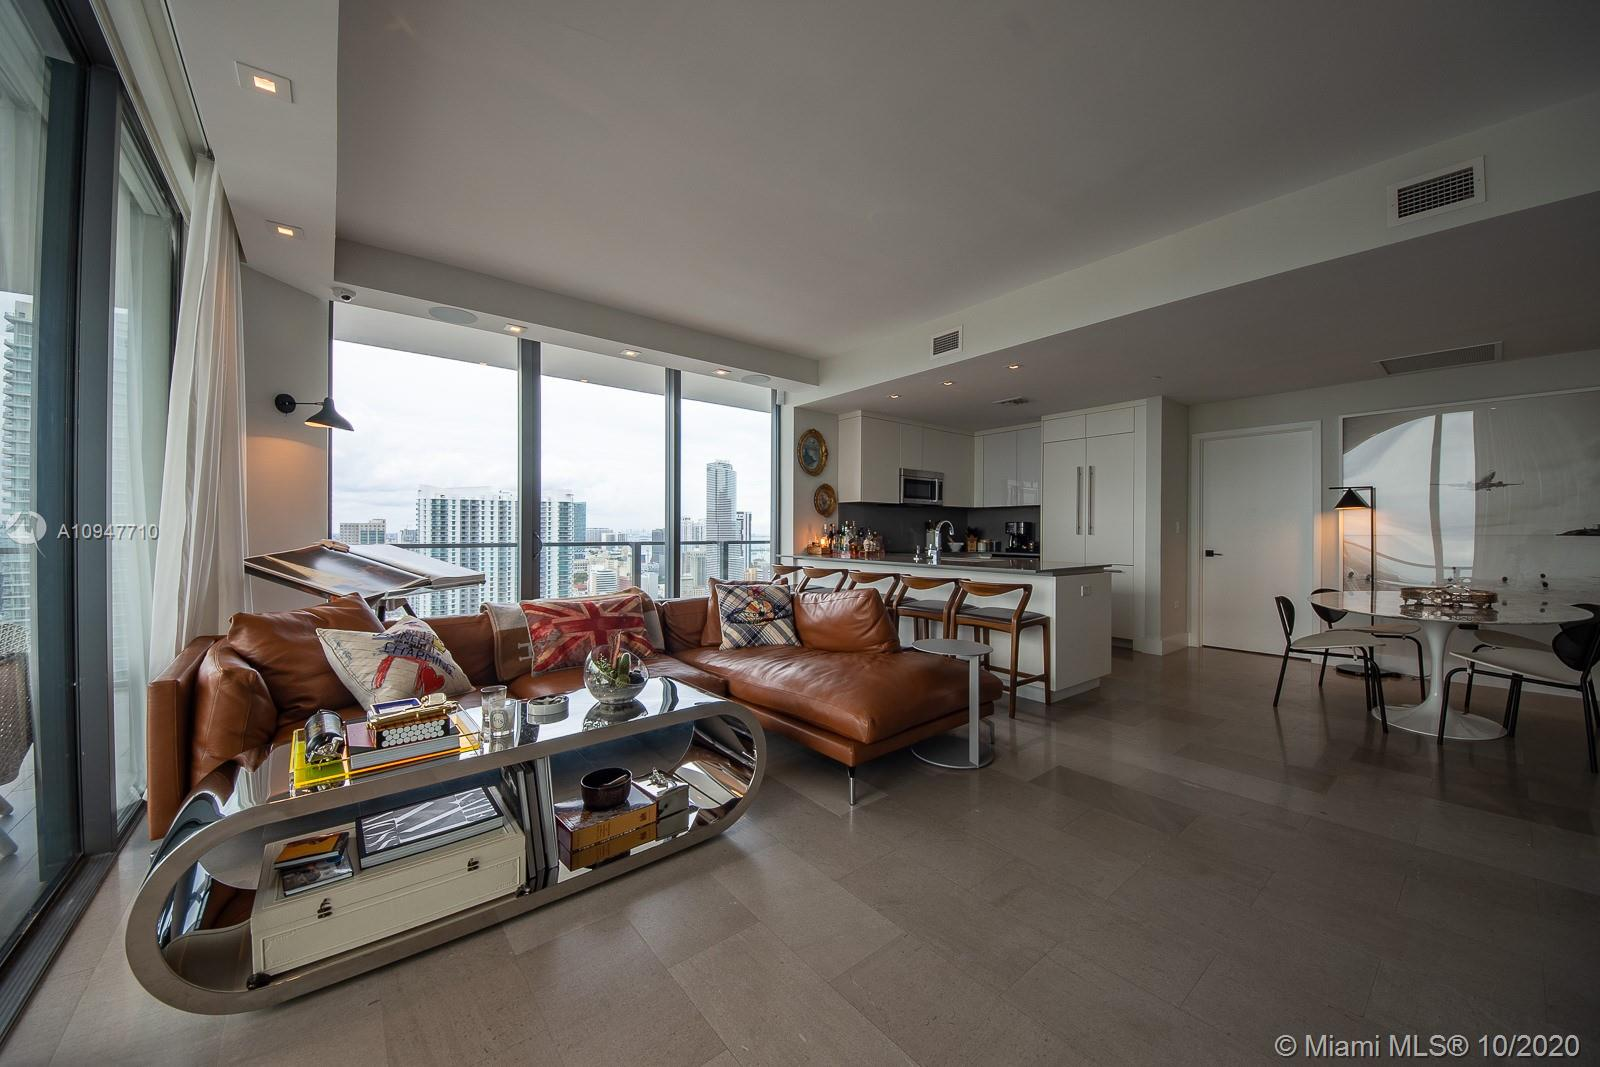 Call Brickell City Centre home at this luxurious 3 bedroom/3.5 bath at Rise. Overlook the city and experience breathtaking sunsets from the 29th floor in this spacious 1664 sqft residence. Sit back & relax at the 6th floor amenity desk with a pool & hot tub, pergola with swings, BBQ area, outdoor kids' playground, indoor kids' playroom, fitness center with complimentary classes, and spa with hammam. The 7th floor feature a social room & business center. Parking is never a problem at Brickell City Centre.  This residence includes 1 self parking space, 1 valet space, and up to 4 complimentary guest valet per day (overnight not included). Call today to book your tour, virtual & in-person are available.